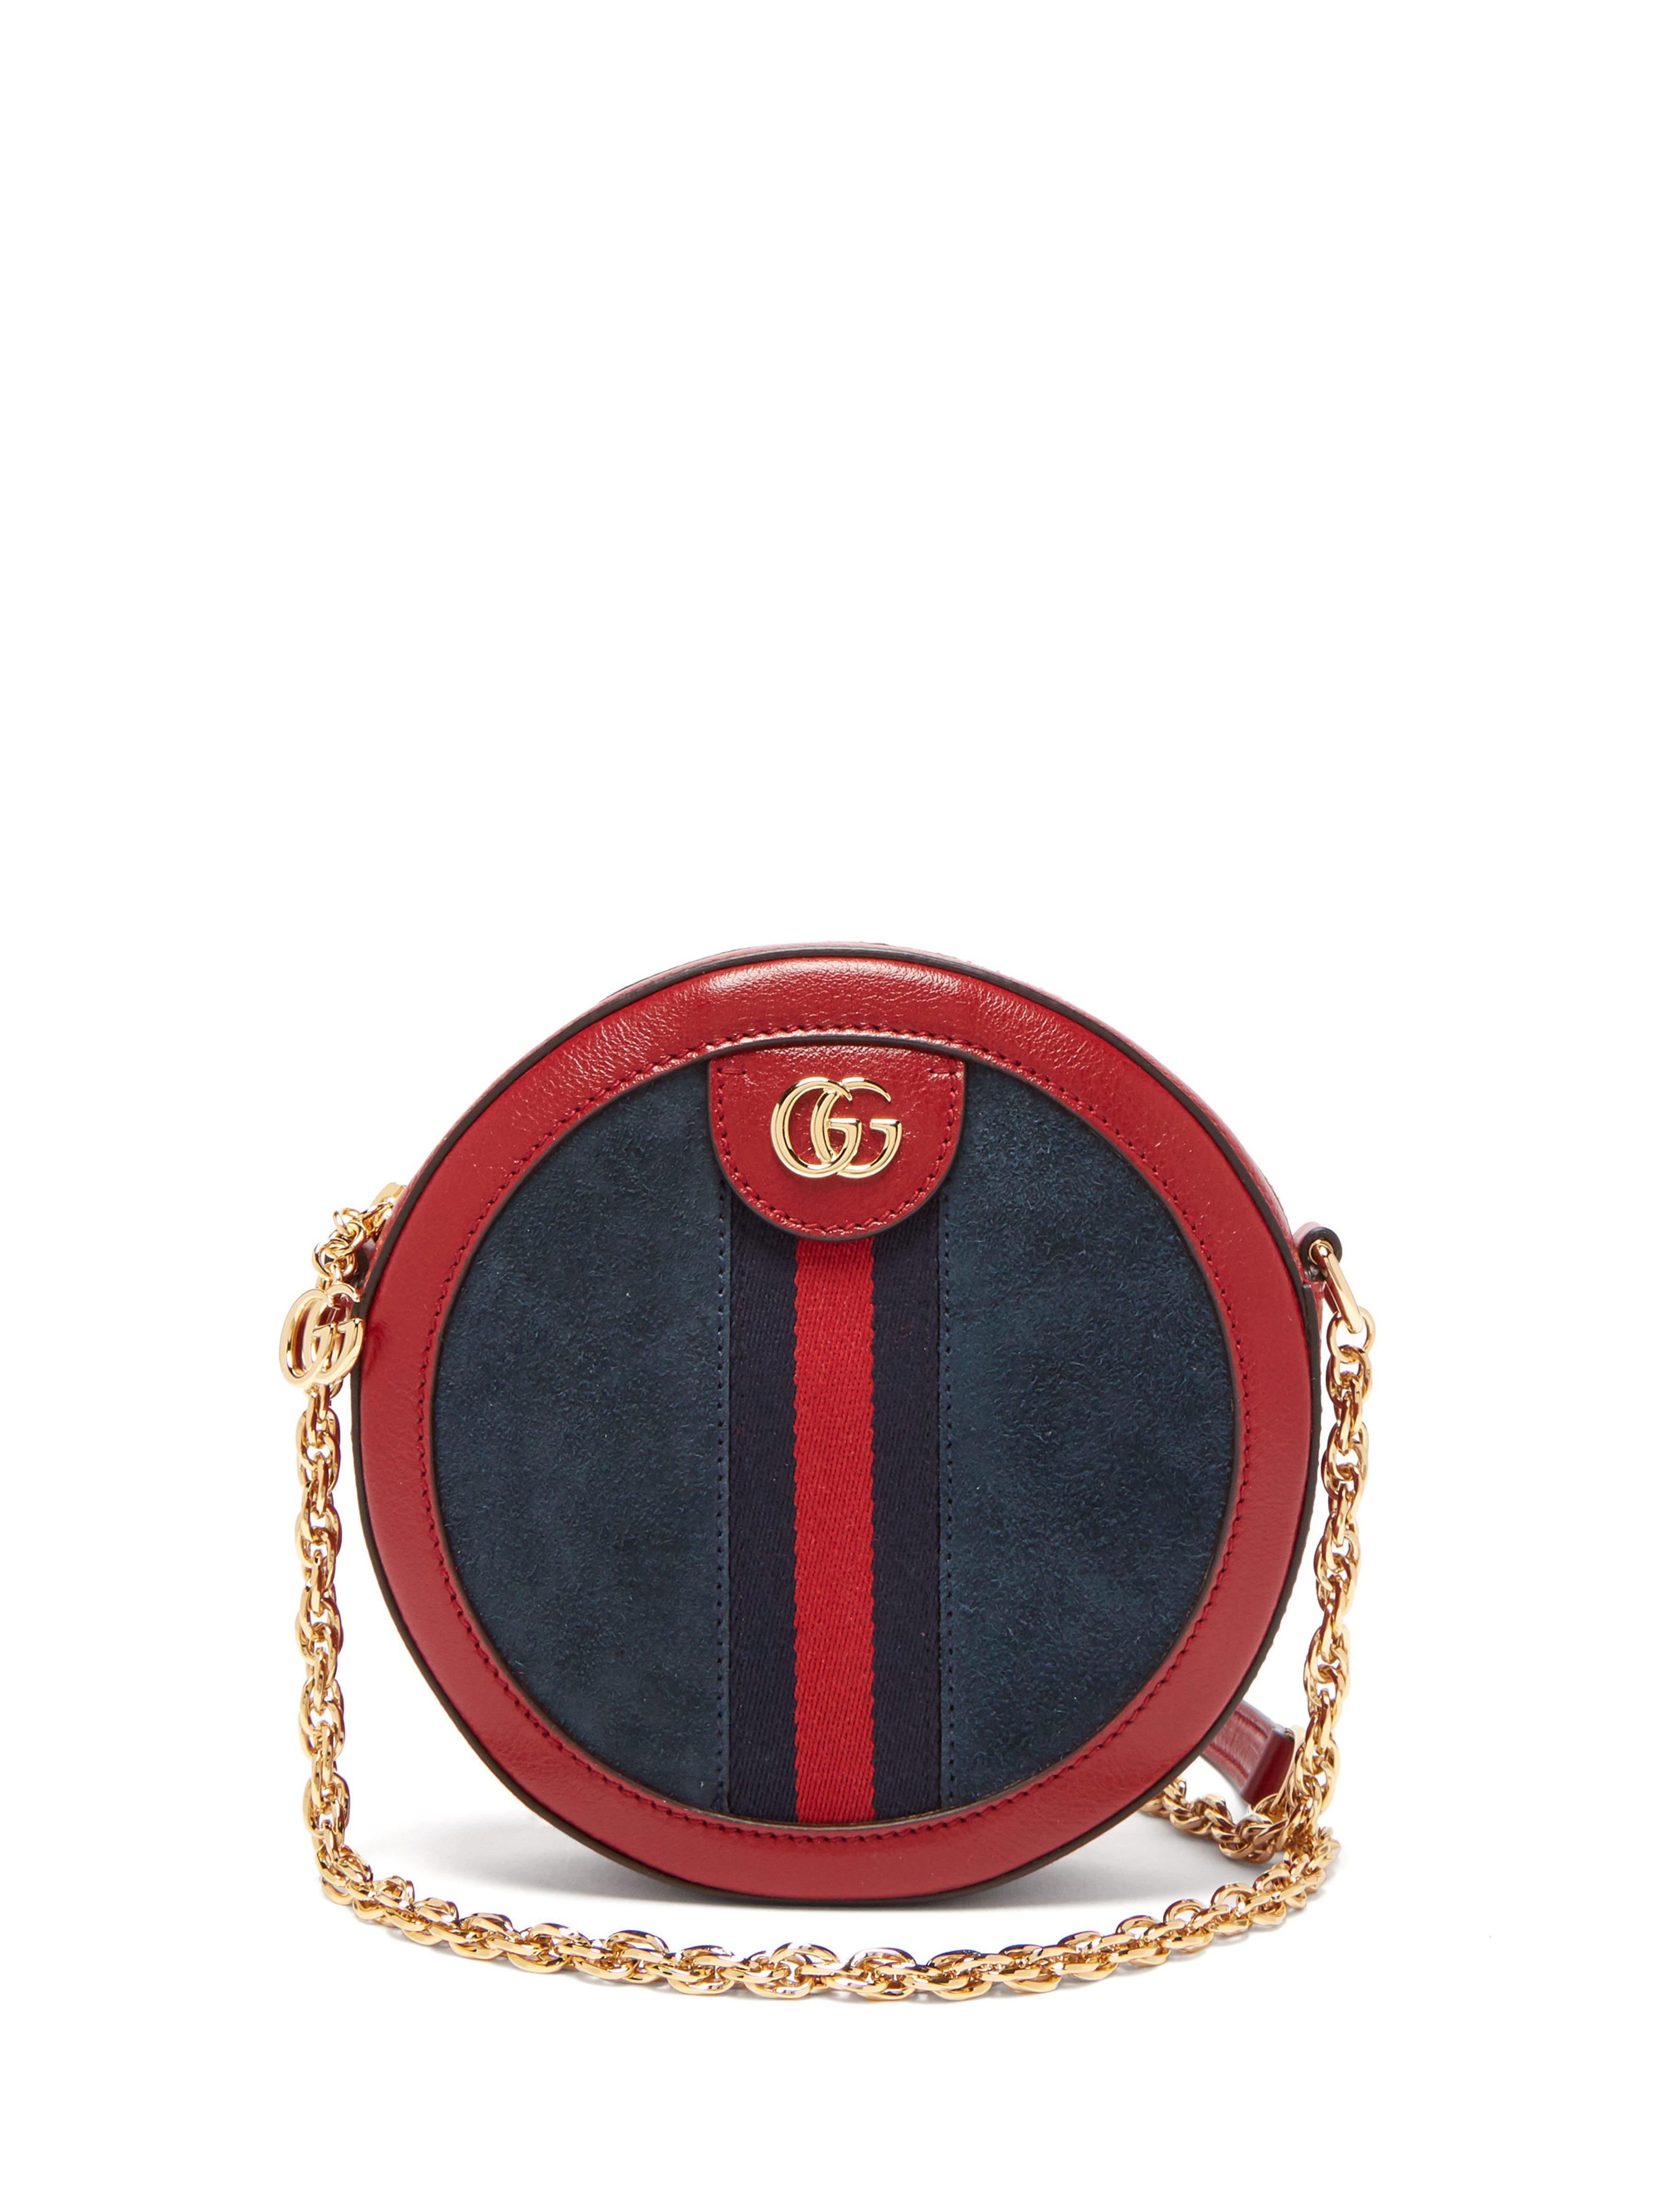 7f1b915185af Gucci Ophidia Leather And Suede Cross Body Bag in Red - Lyst